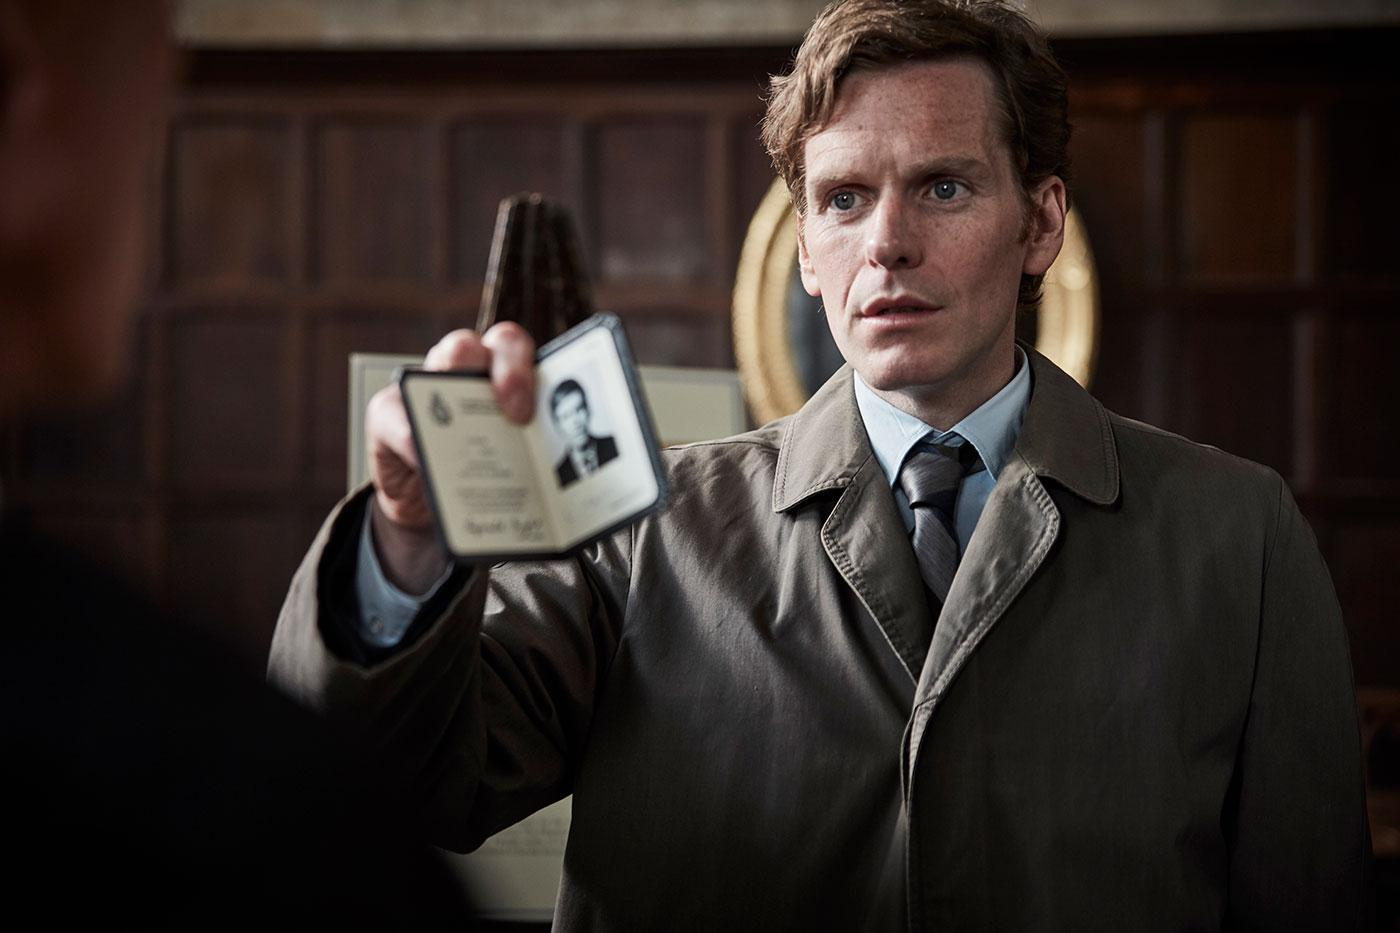 Shaun Evans as Detective Sergeant Endeavour Morse. Photo: ITV and Masterpiece